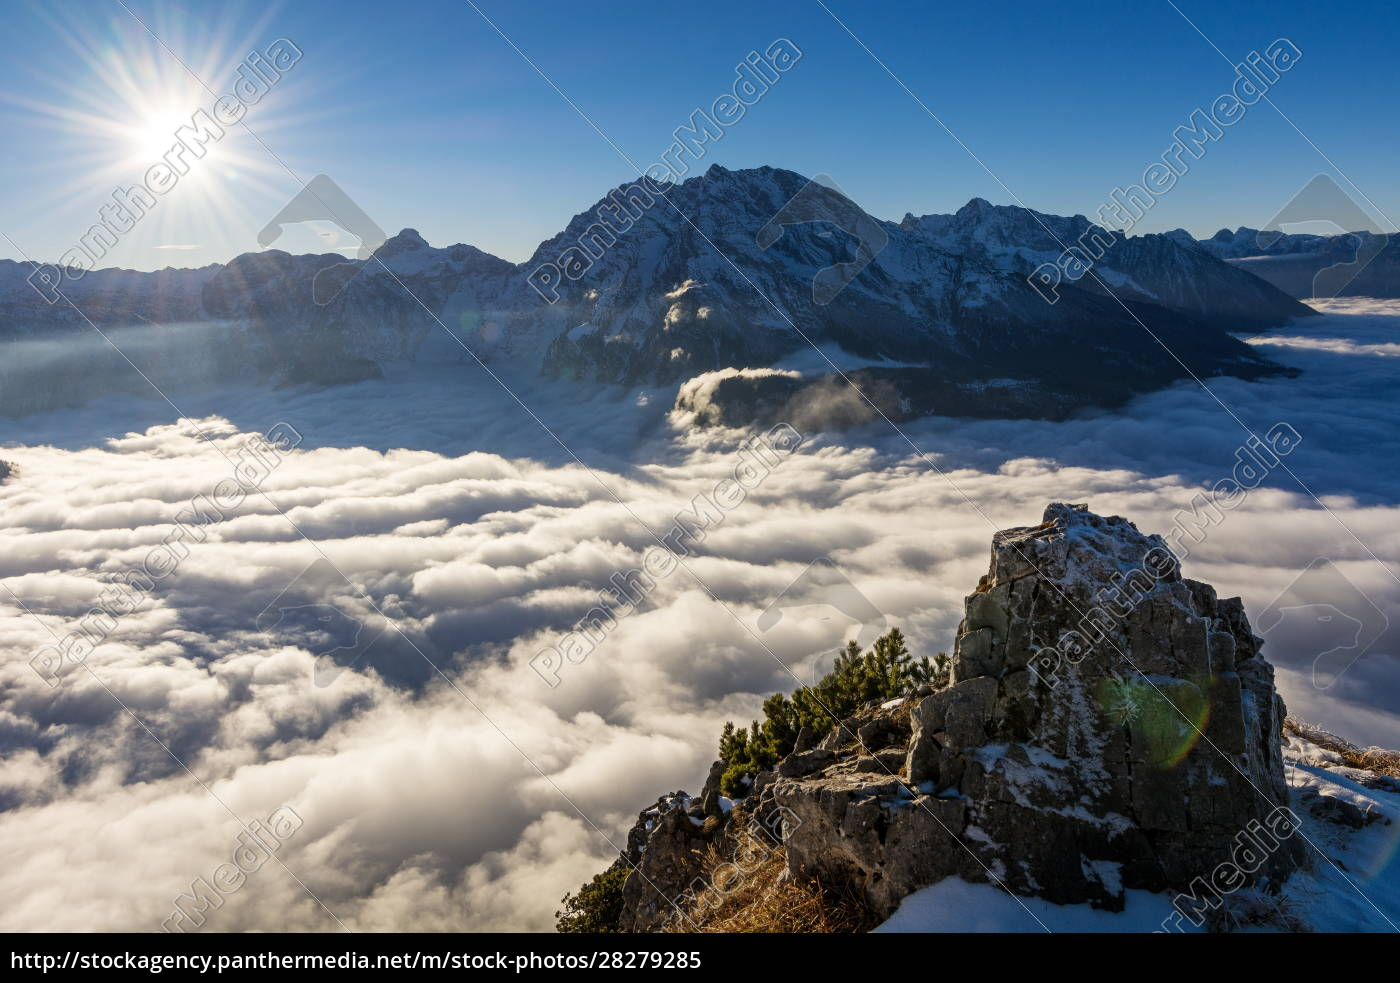 a, foggy, day, in, the, alps - 28279285